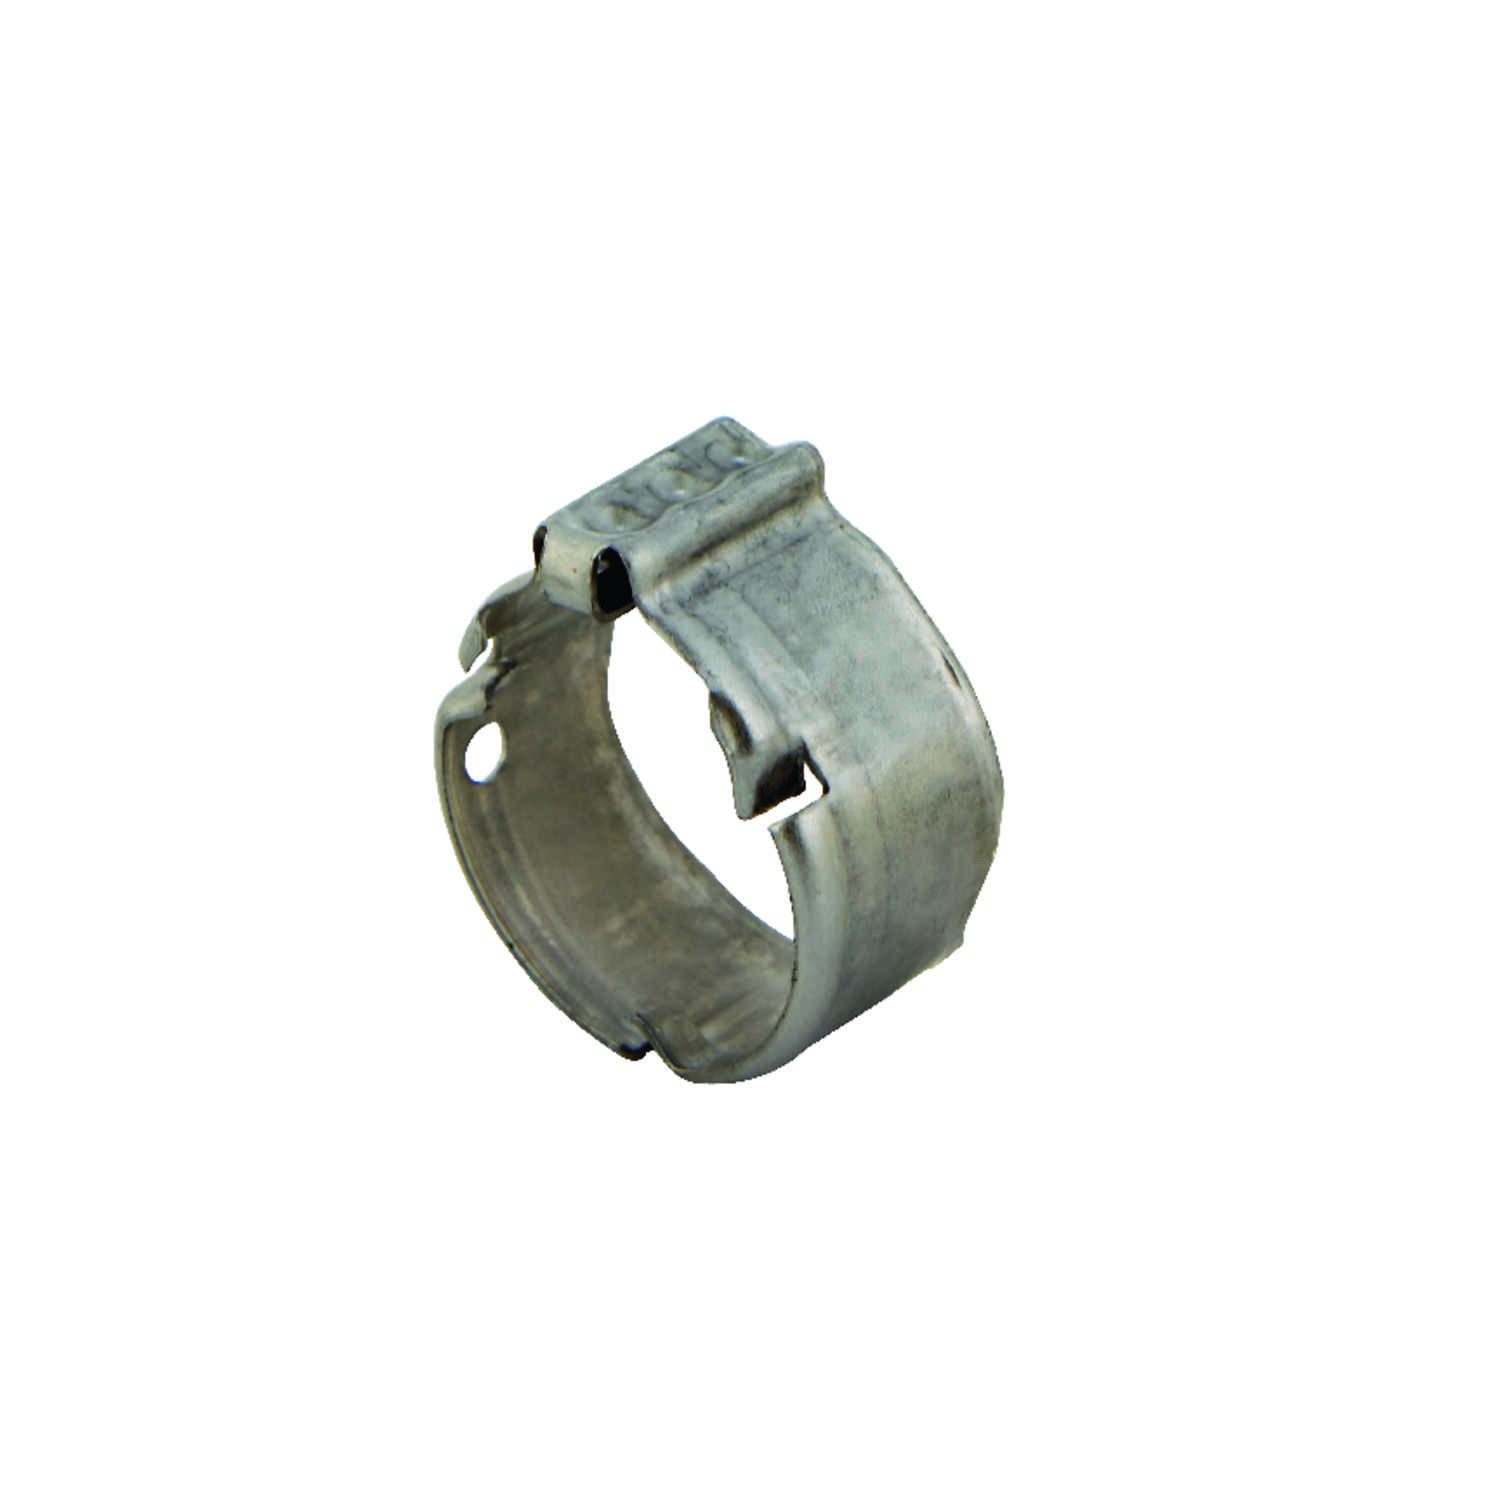 Zurn  Qickclamp  3/4 in. CTS   x 3/4 in. Dia. CTS  Stainless Steel  Crimp Ring